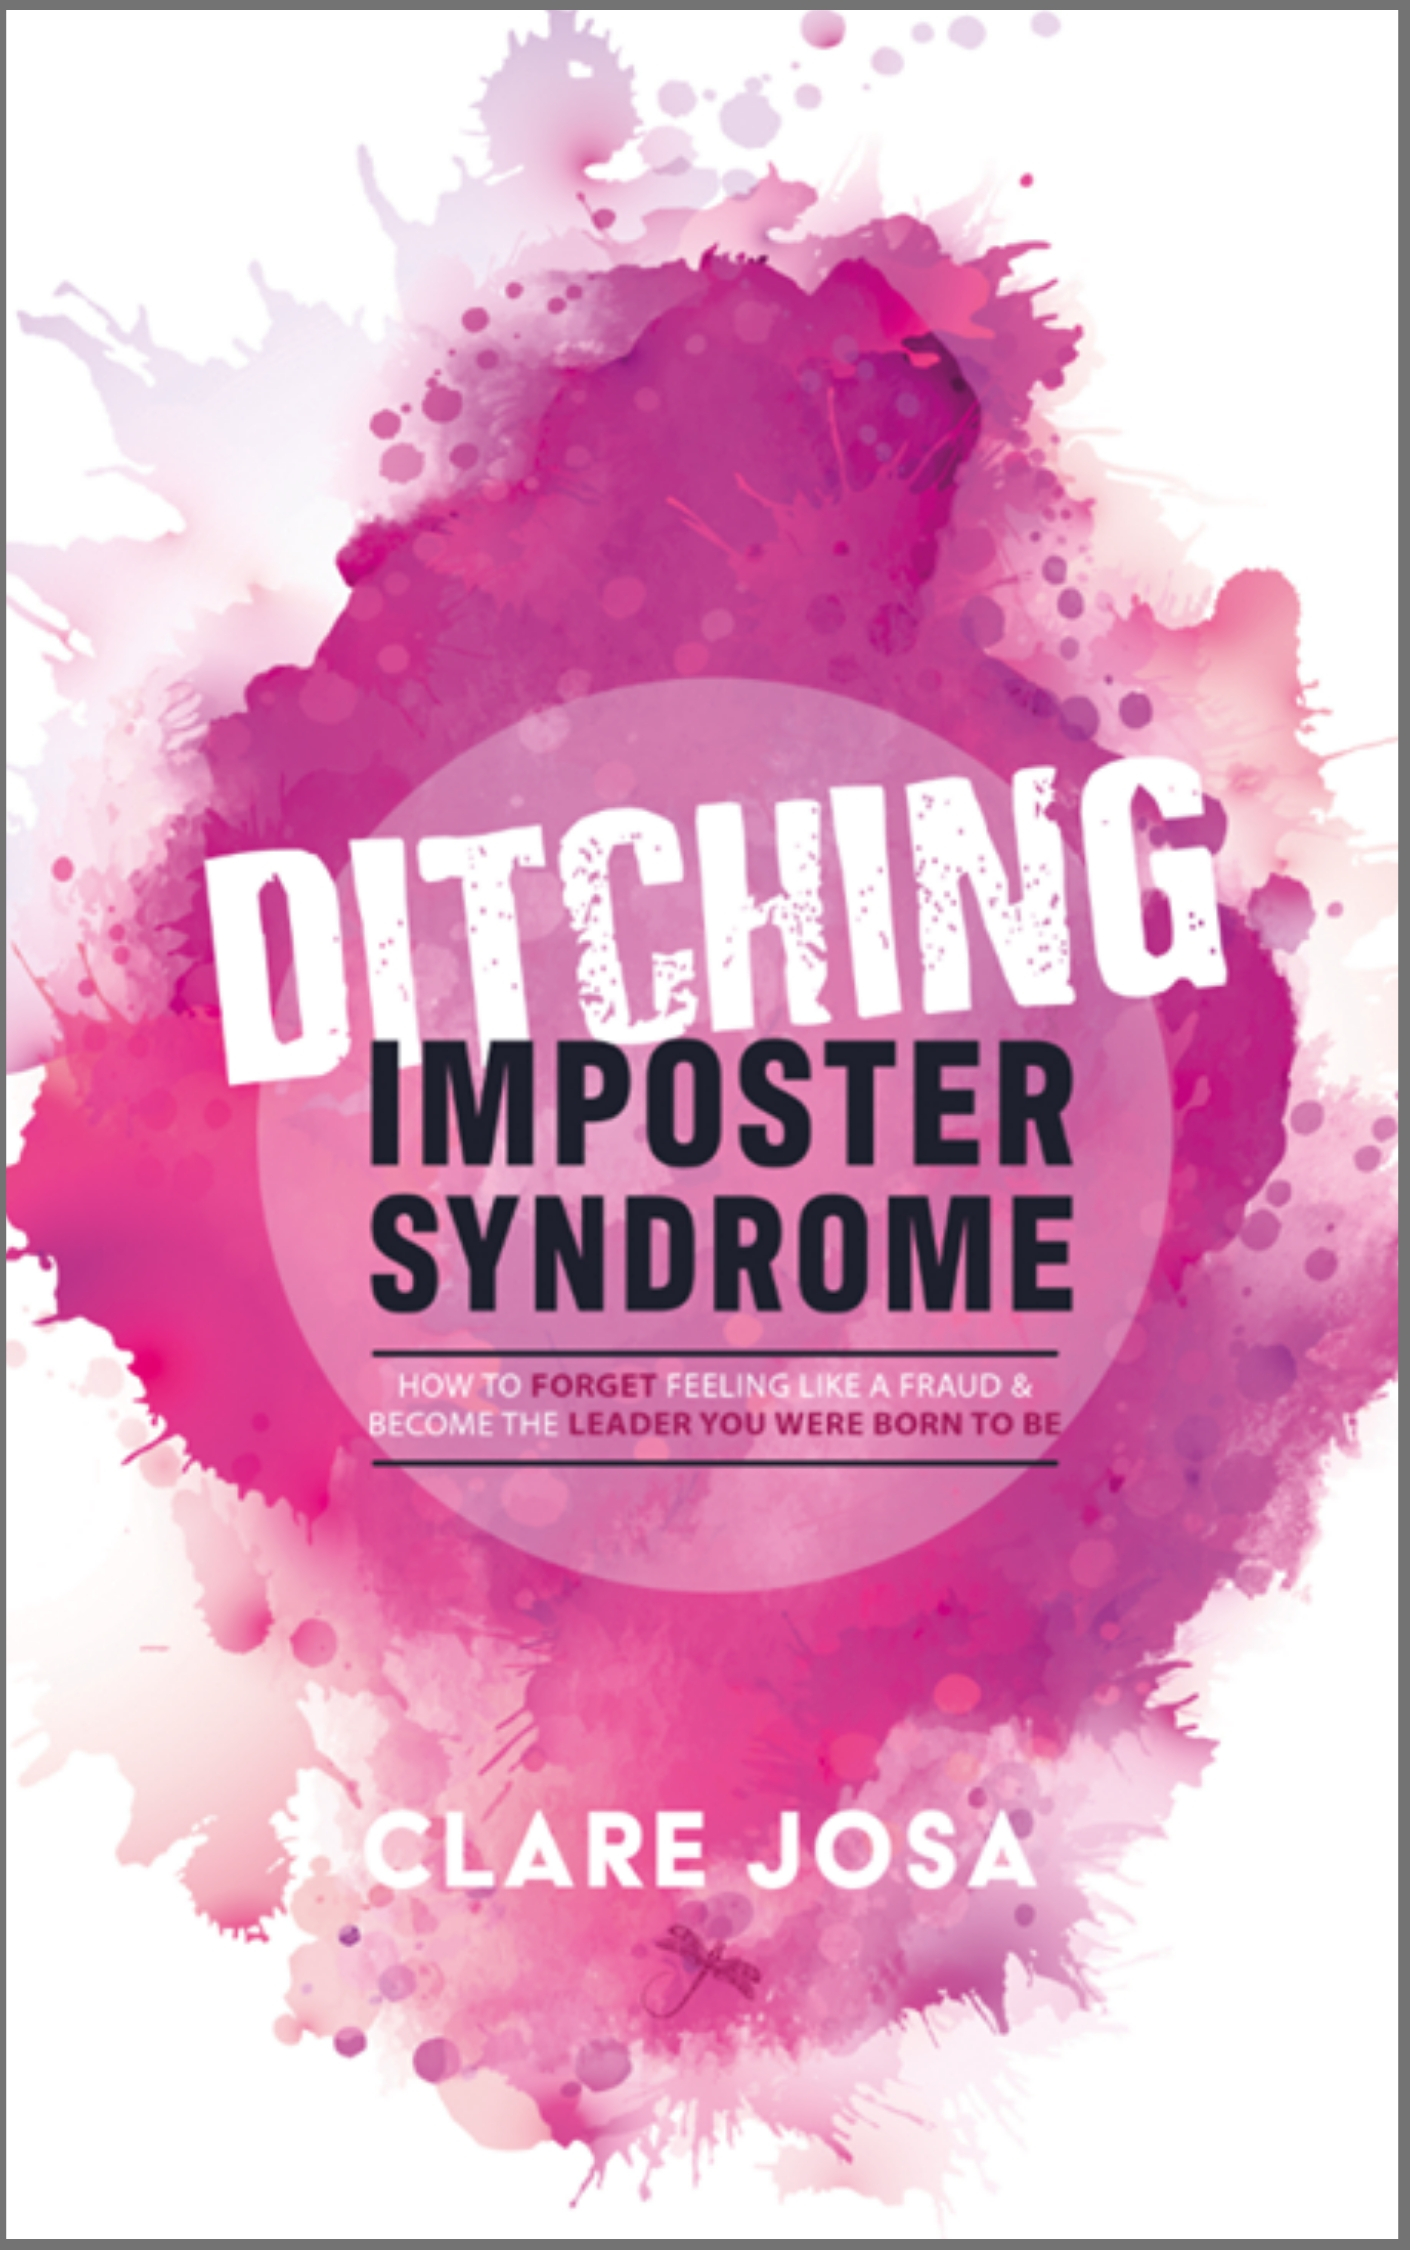 Find out more about Ditching Imposter Syndrome